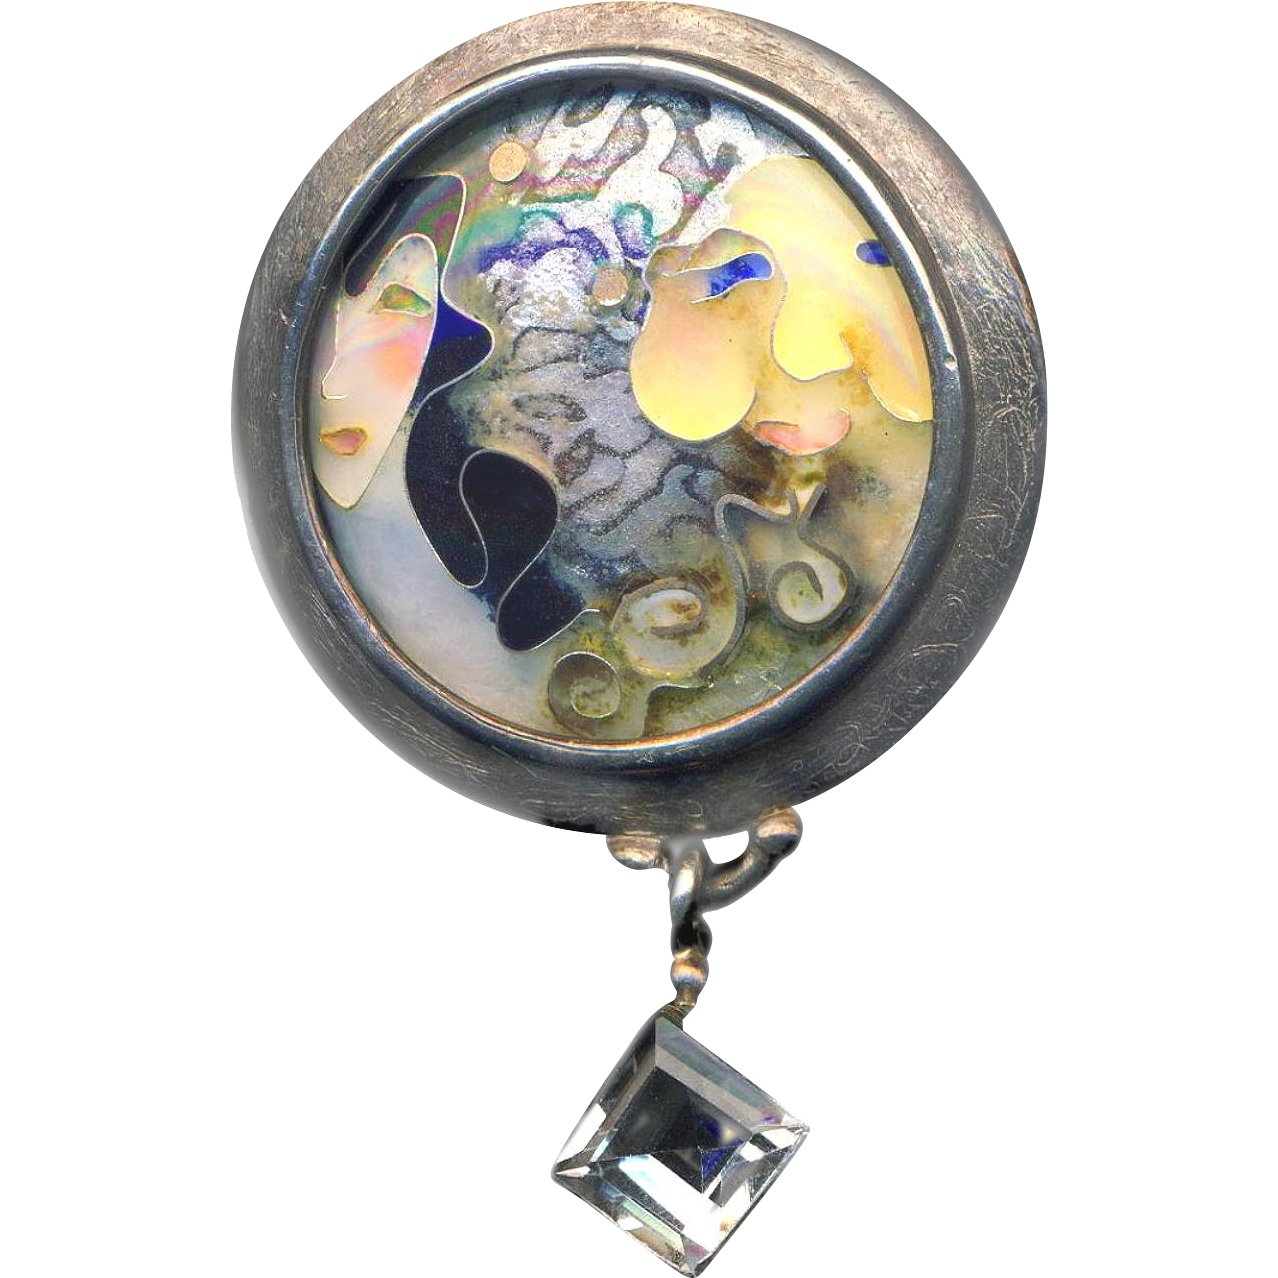 Brooch--Sue Knopp Me & My Moon Cloisonne Enamel on Sterling Silver with Quartz